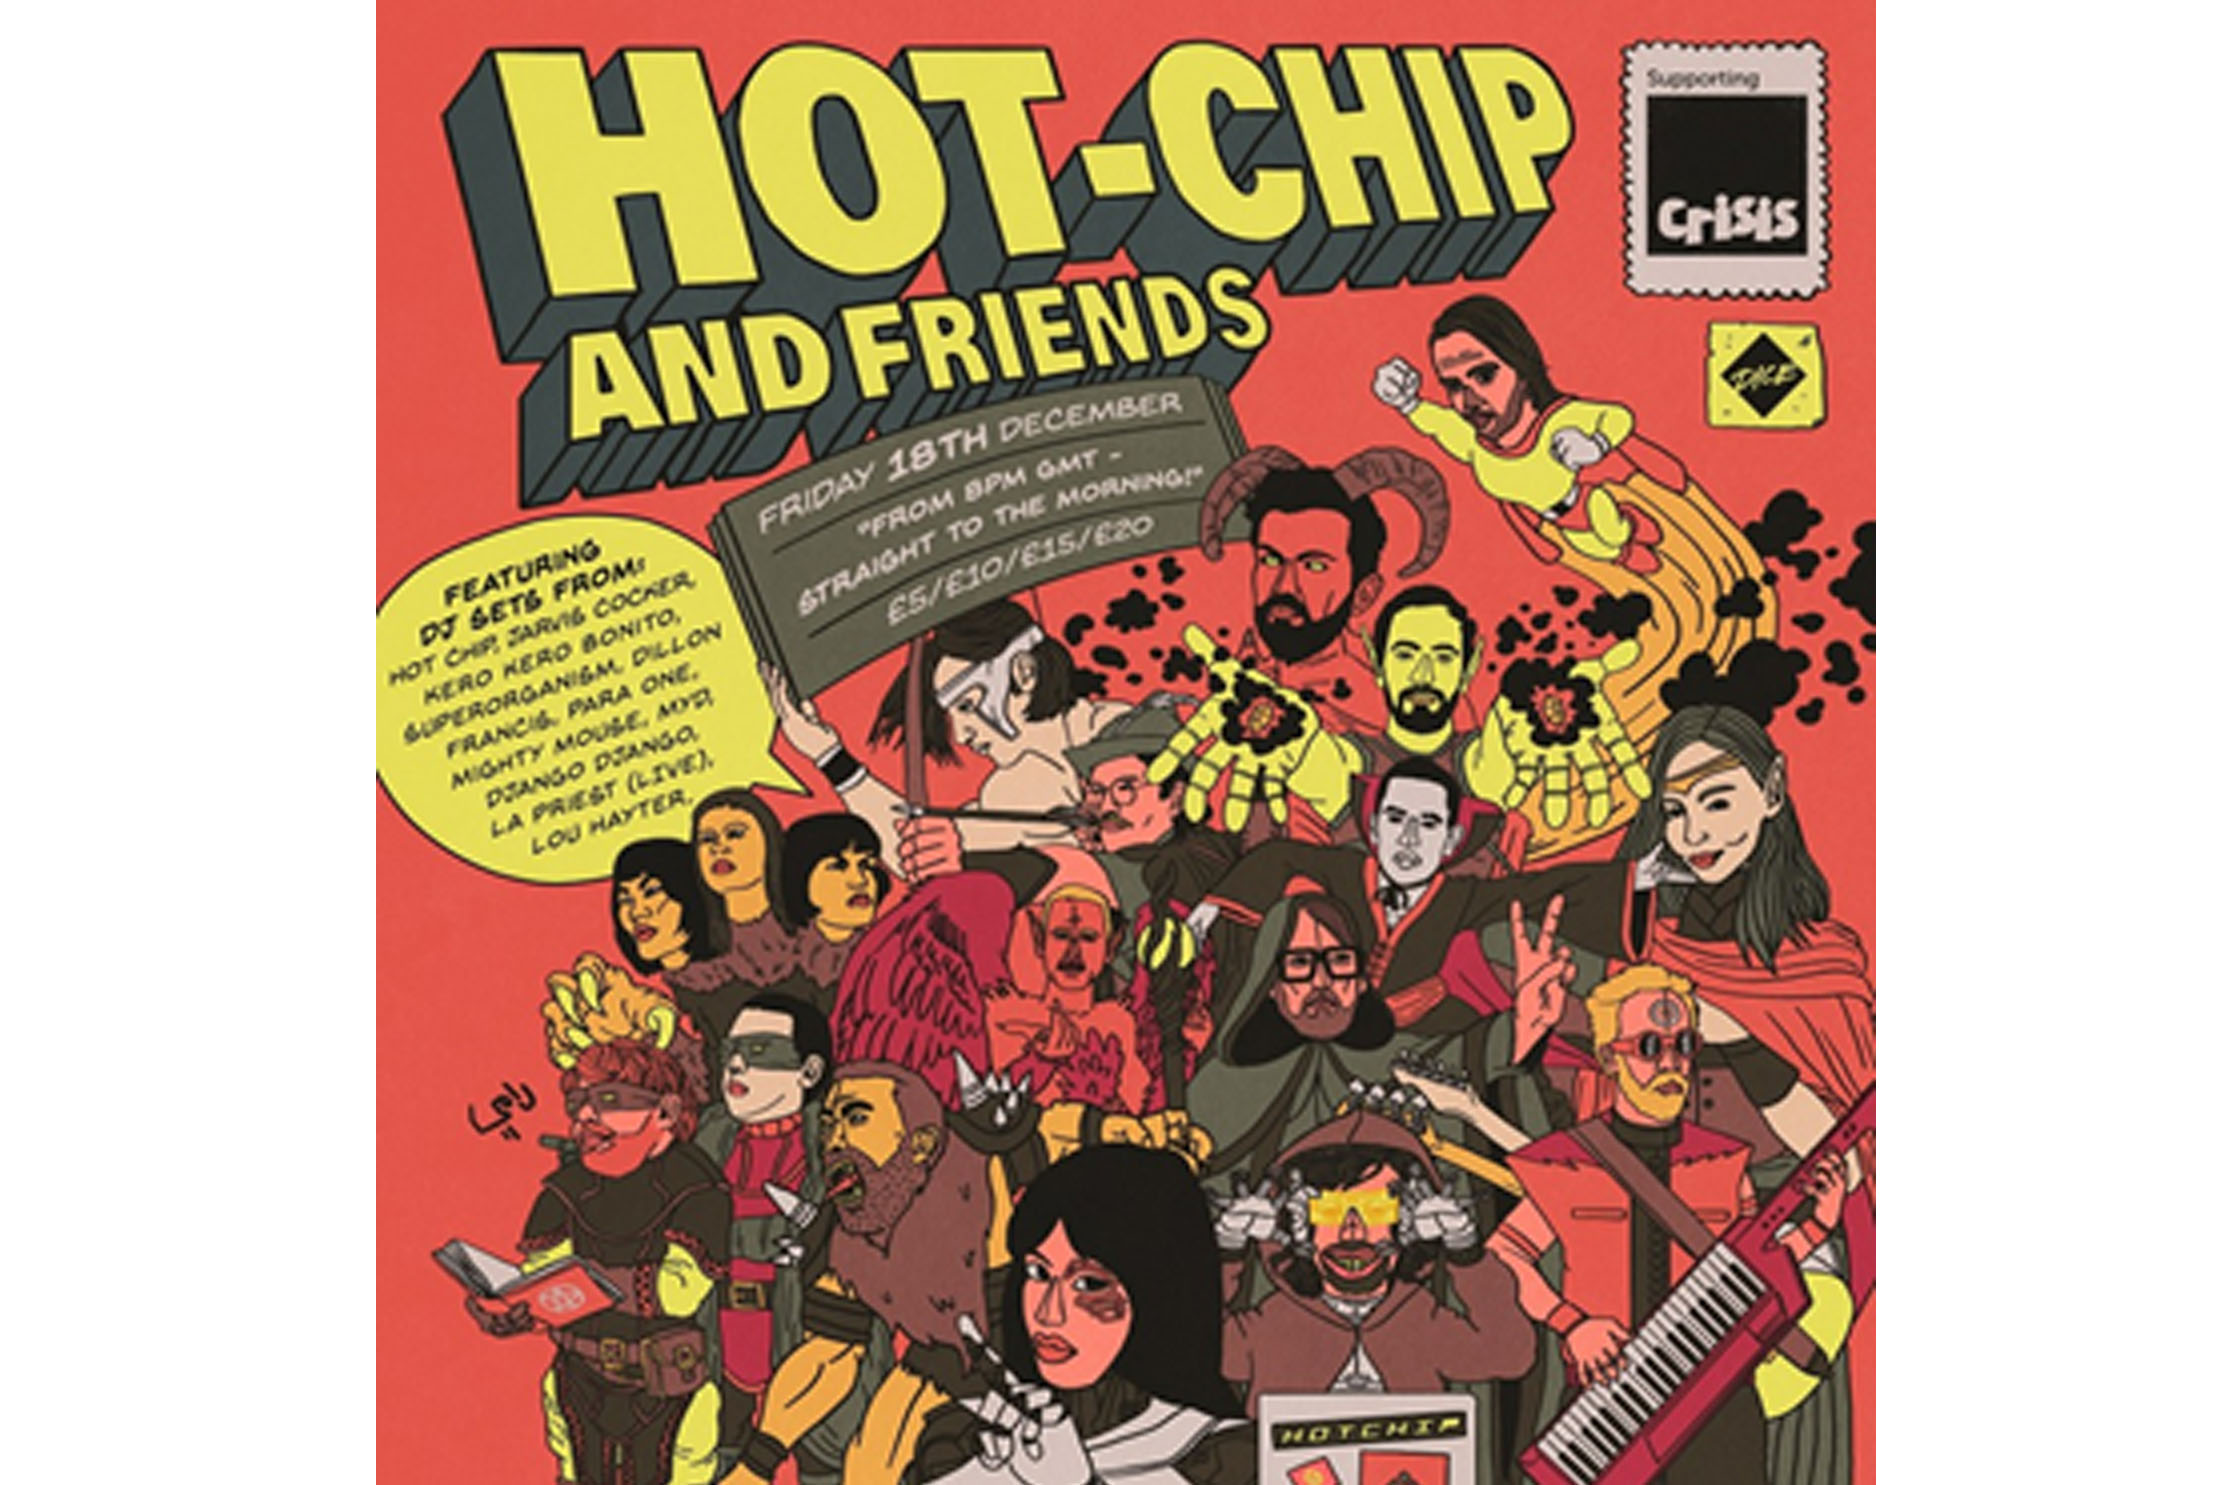 Hot Chip and Friends get together in aid of homeless charity Crisis on Fri 18 Dec